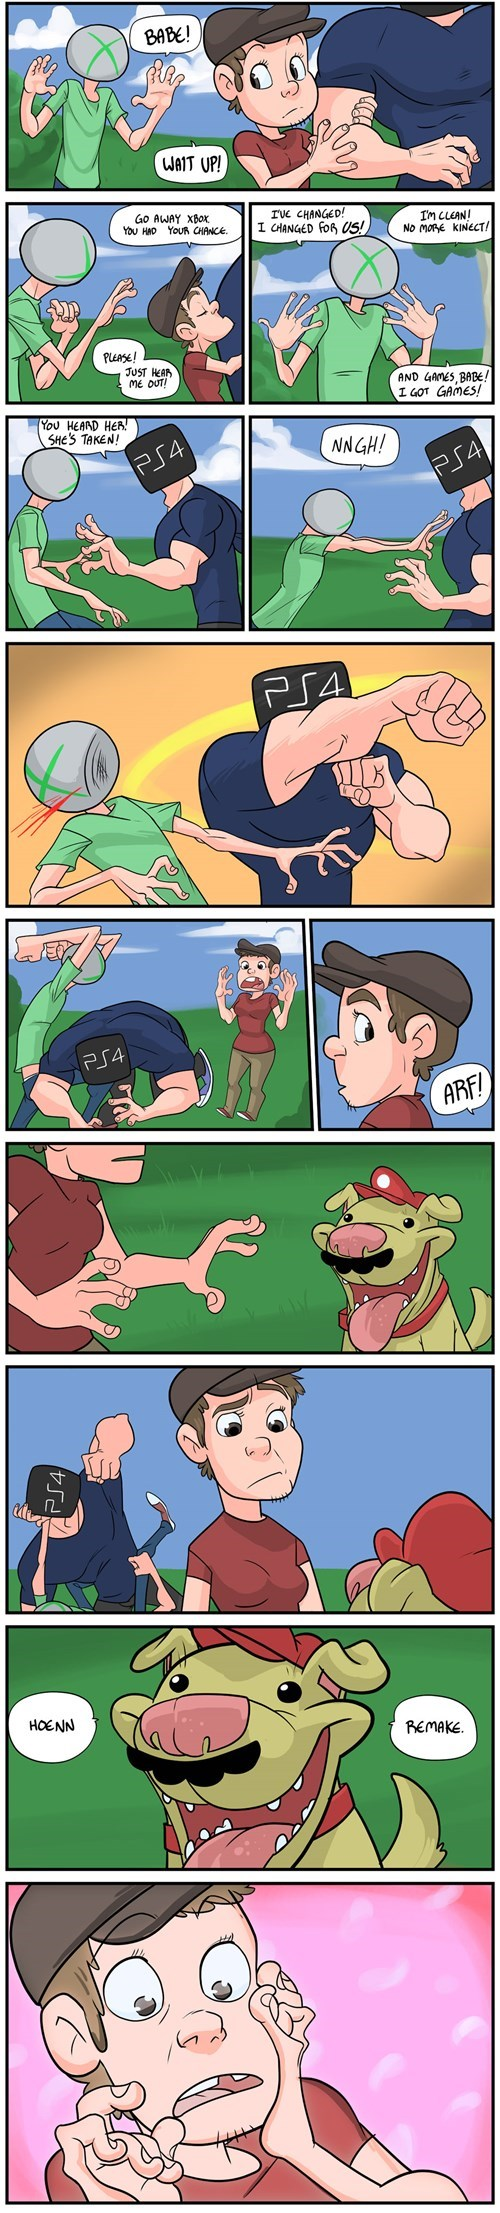 gaming,gamers,video games,web comics,hoenn remake